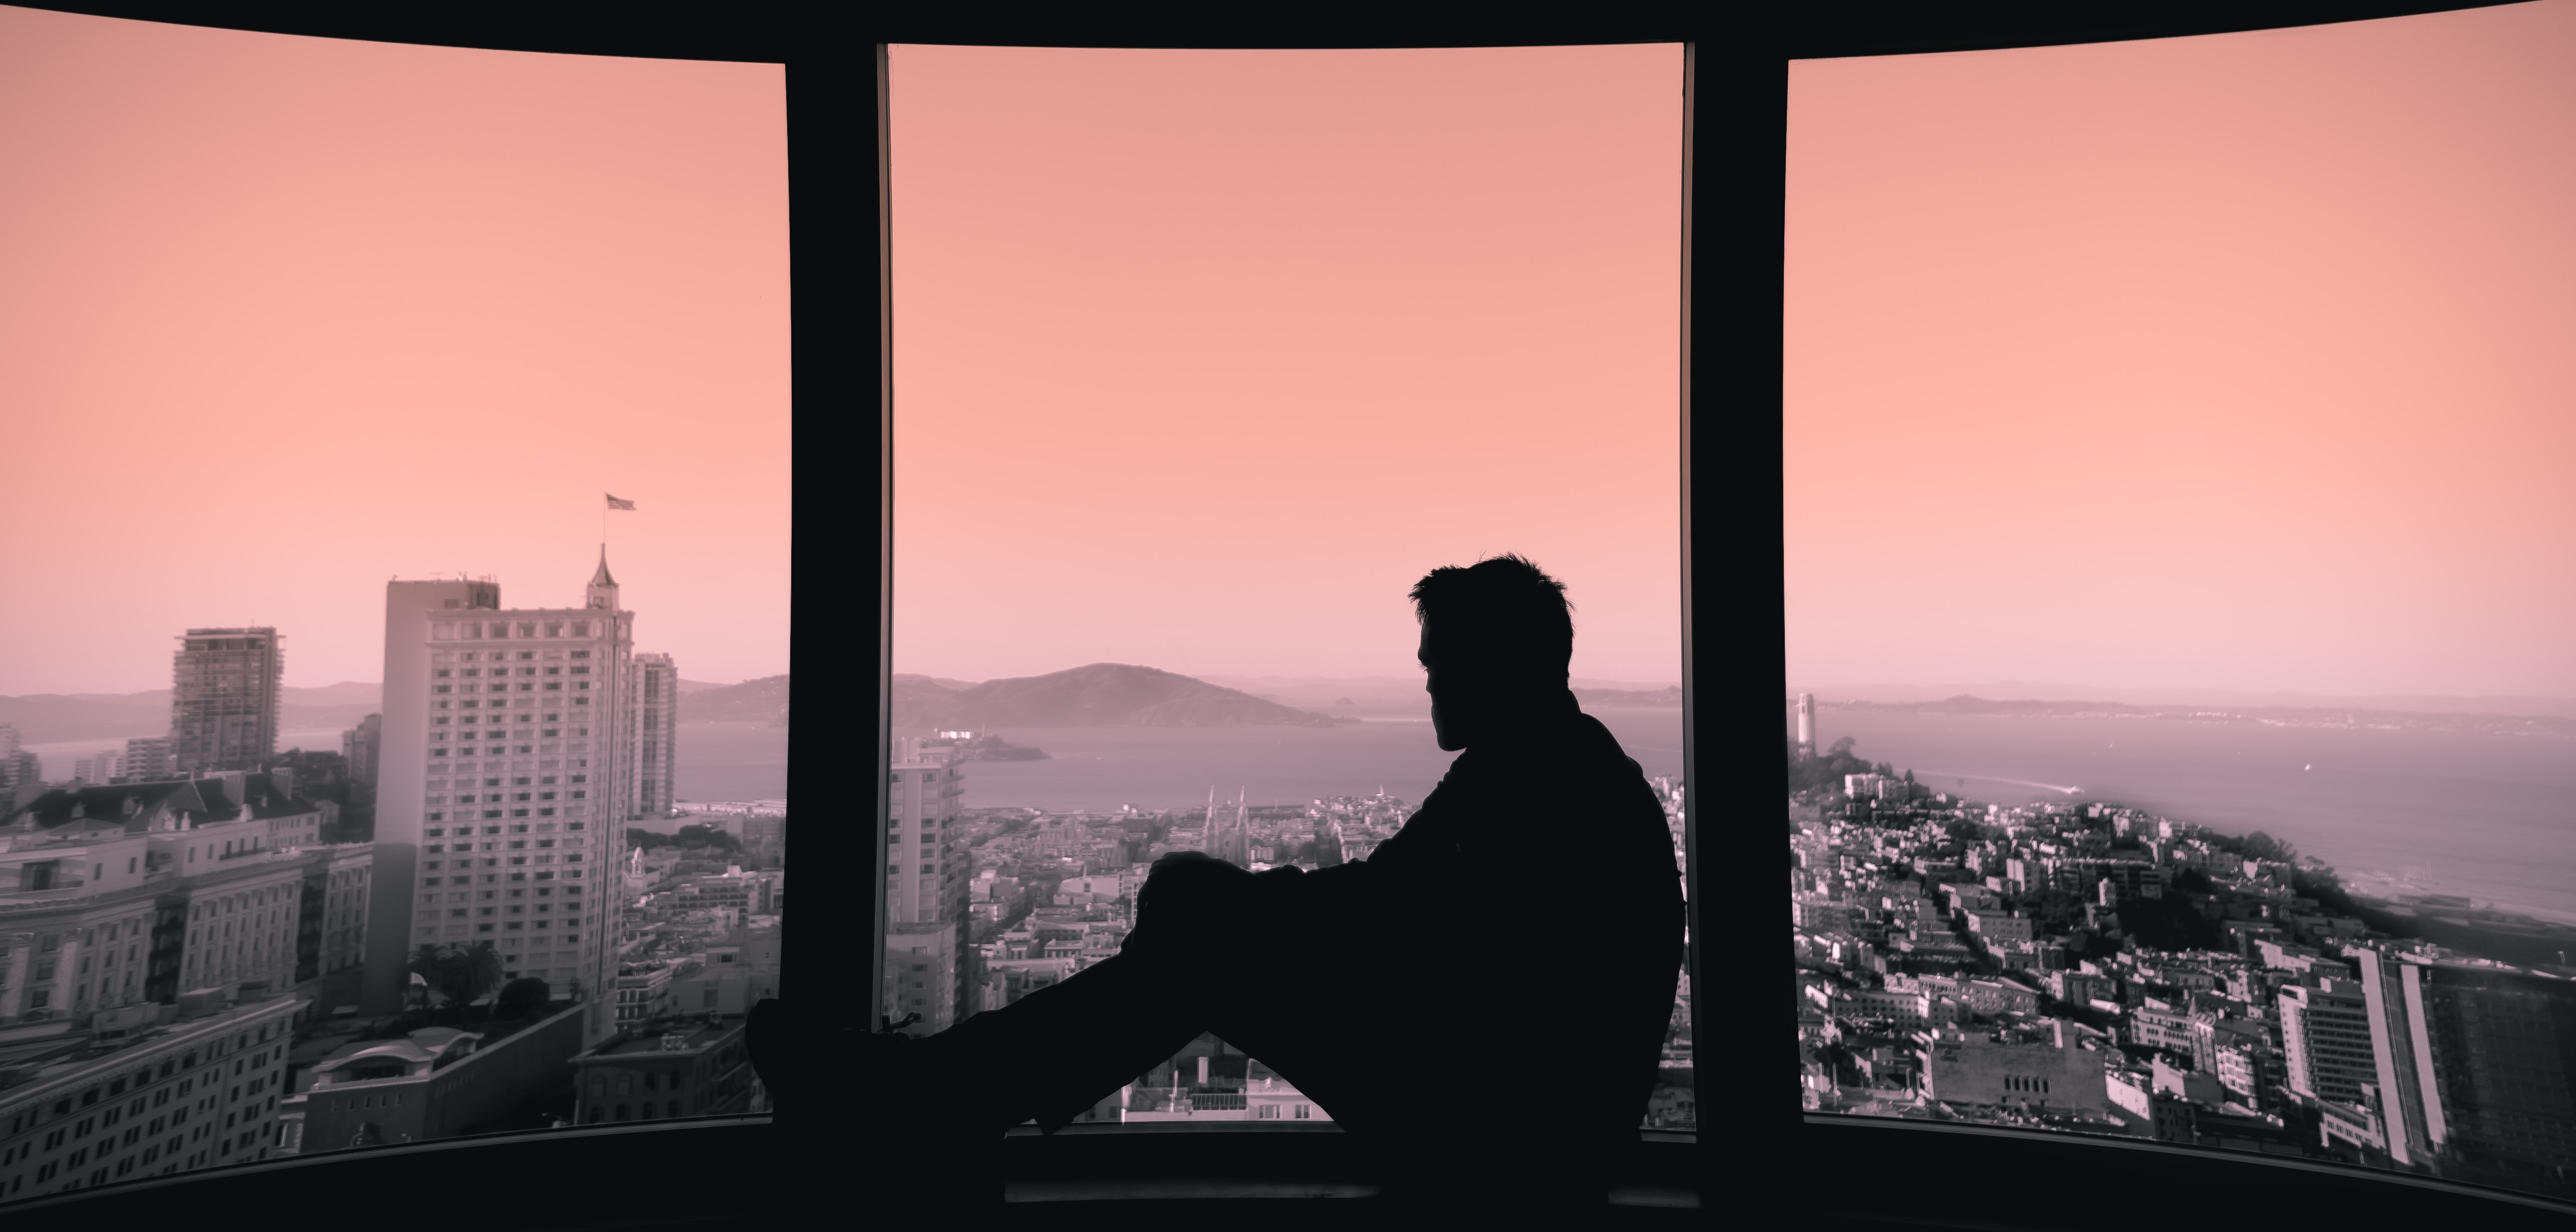 A silhouette of a man sitting on a windowsill and looking out the window